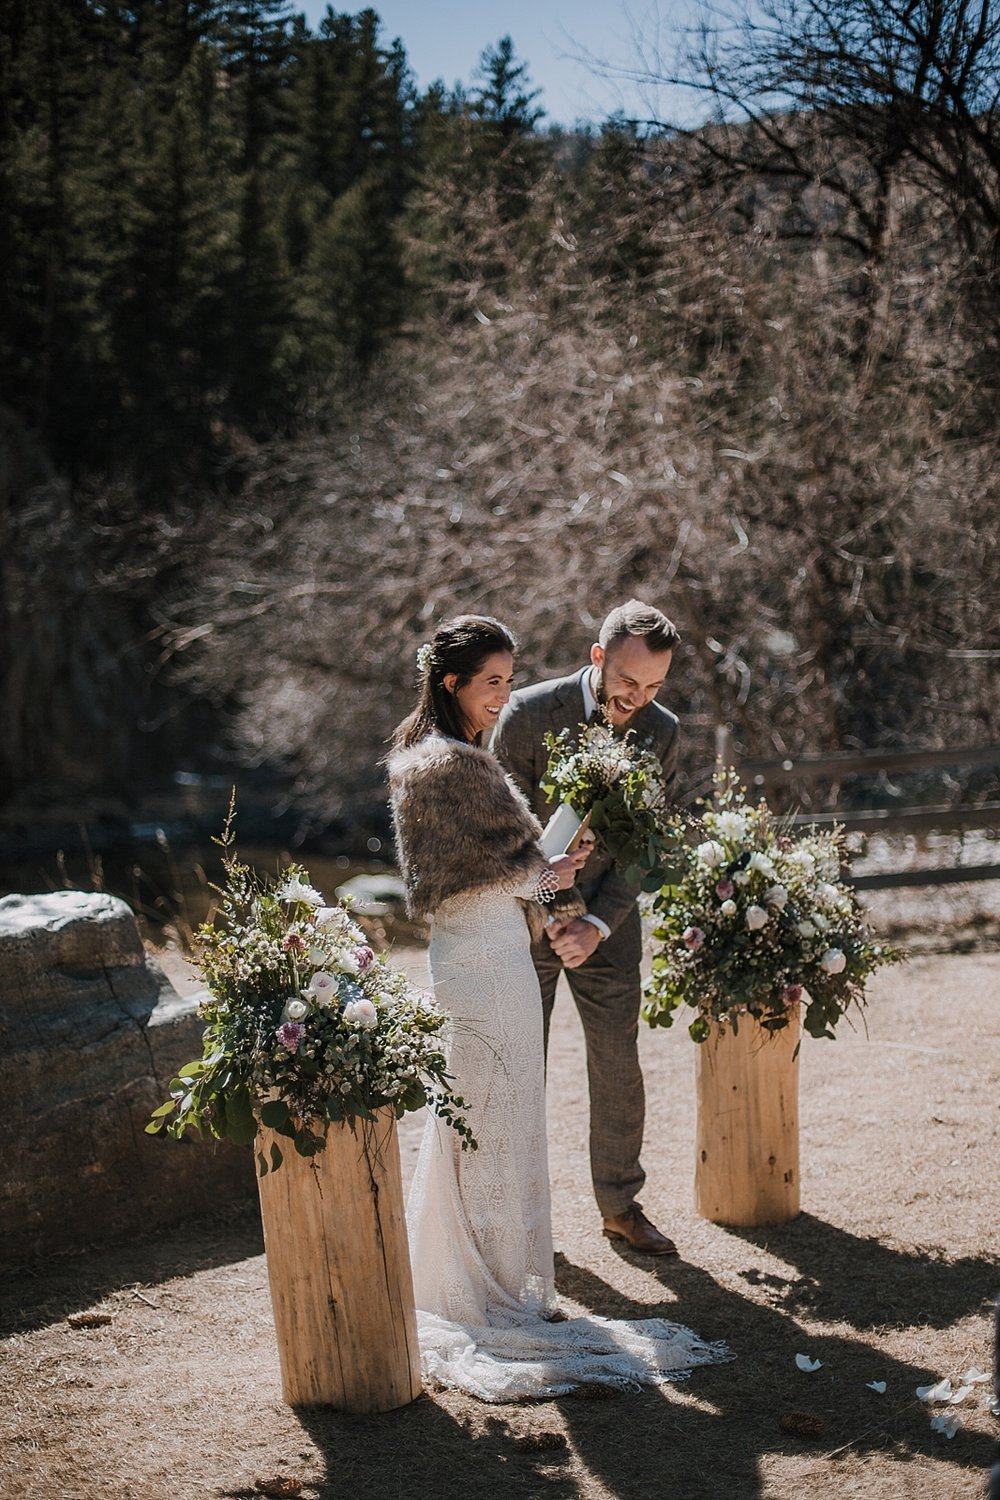 elopement ceremony, self solemnizing elopement, gateway natural area elopement, seaman reservoir elopement, fort collins colorado elopement, colorado elopement, fort collins wedding photographer